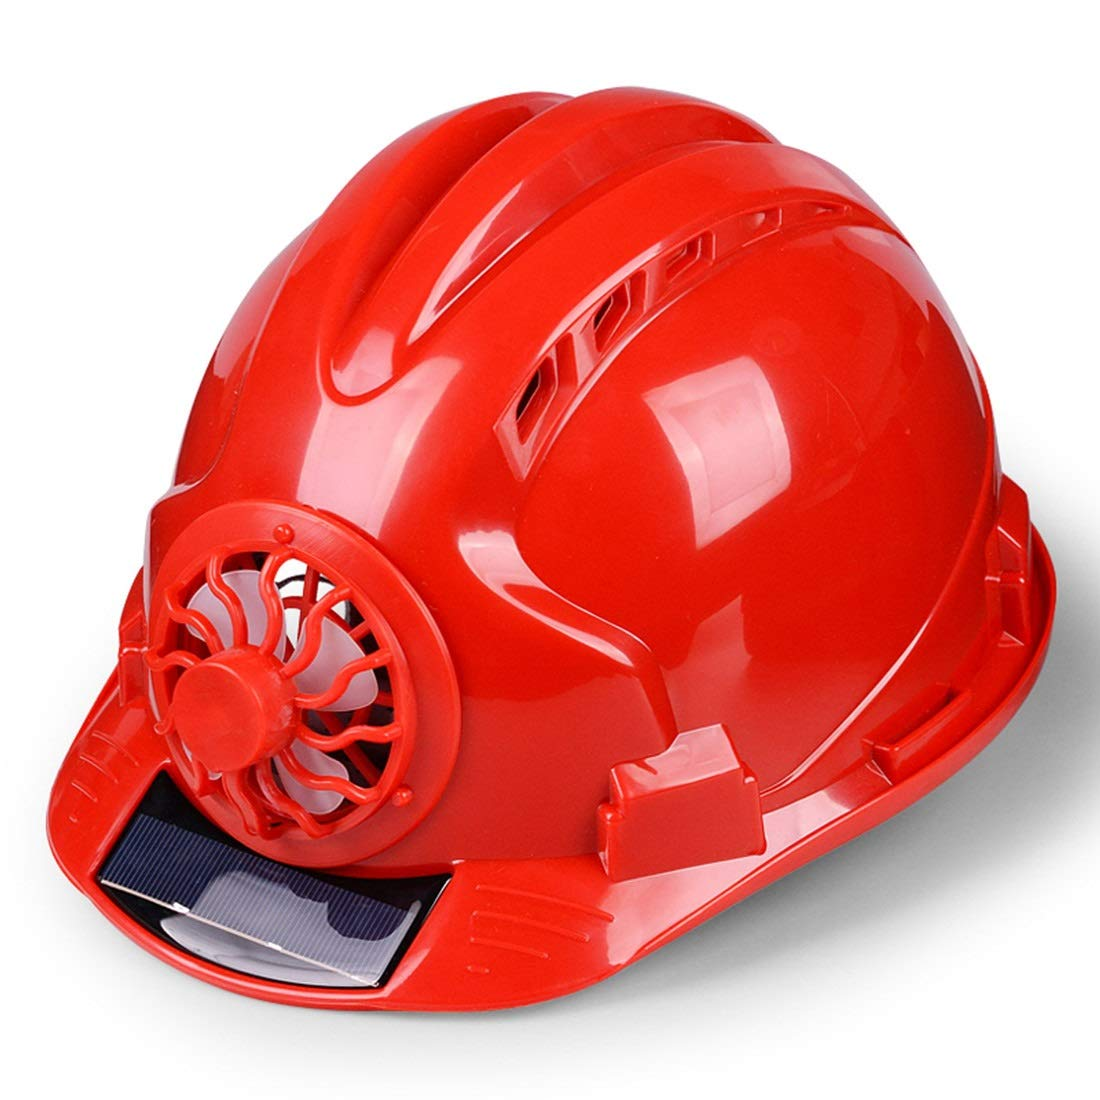 Lilade Adjustable Construction Helmet with 'Solar Fan' Vents-Meets ANSI Standards-Personal Protective Equipment, for Construction,Home Improvement and DIY Projects/PP Material ( Color : Red )